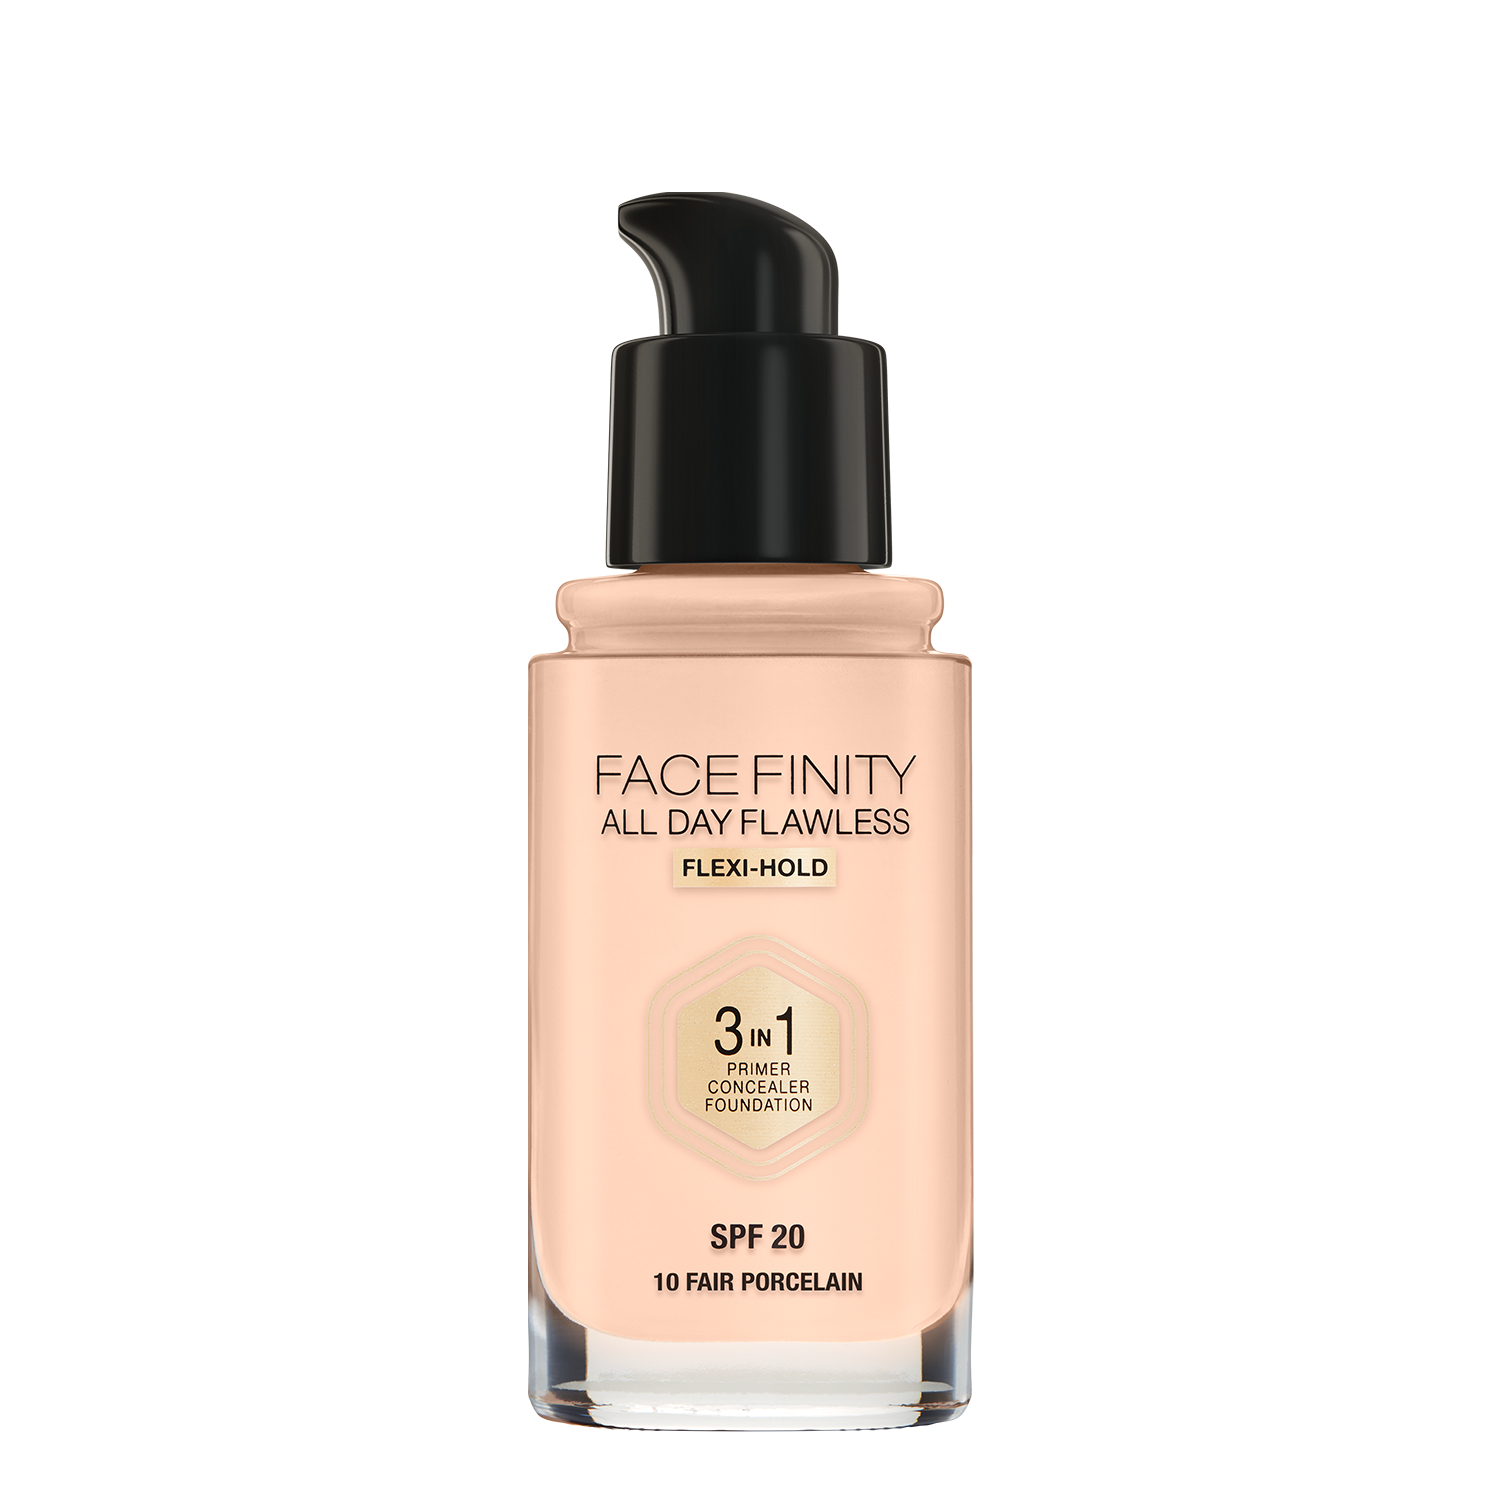 Face Finity All Day Flawless 3 in 1 Foundation: Fair Porcelain